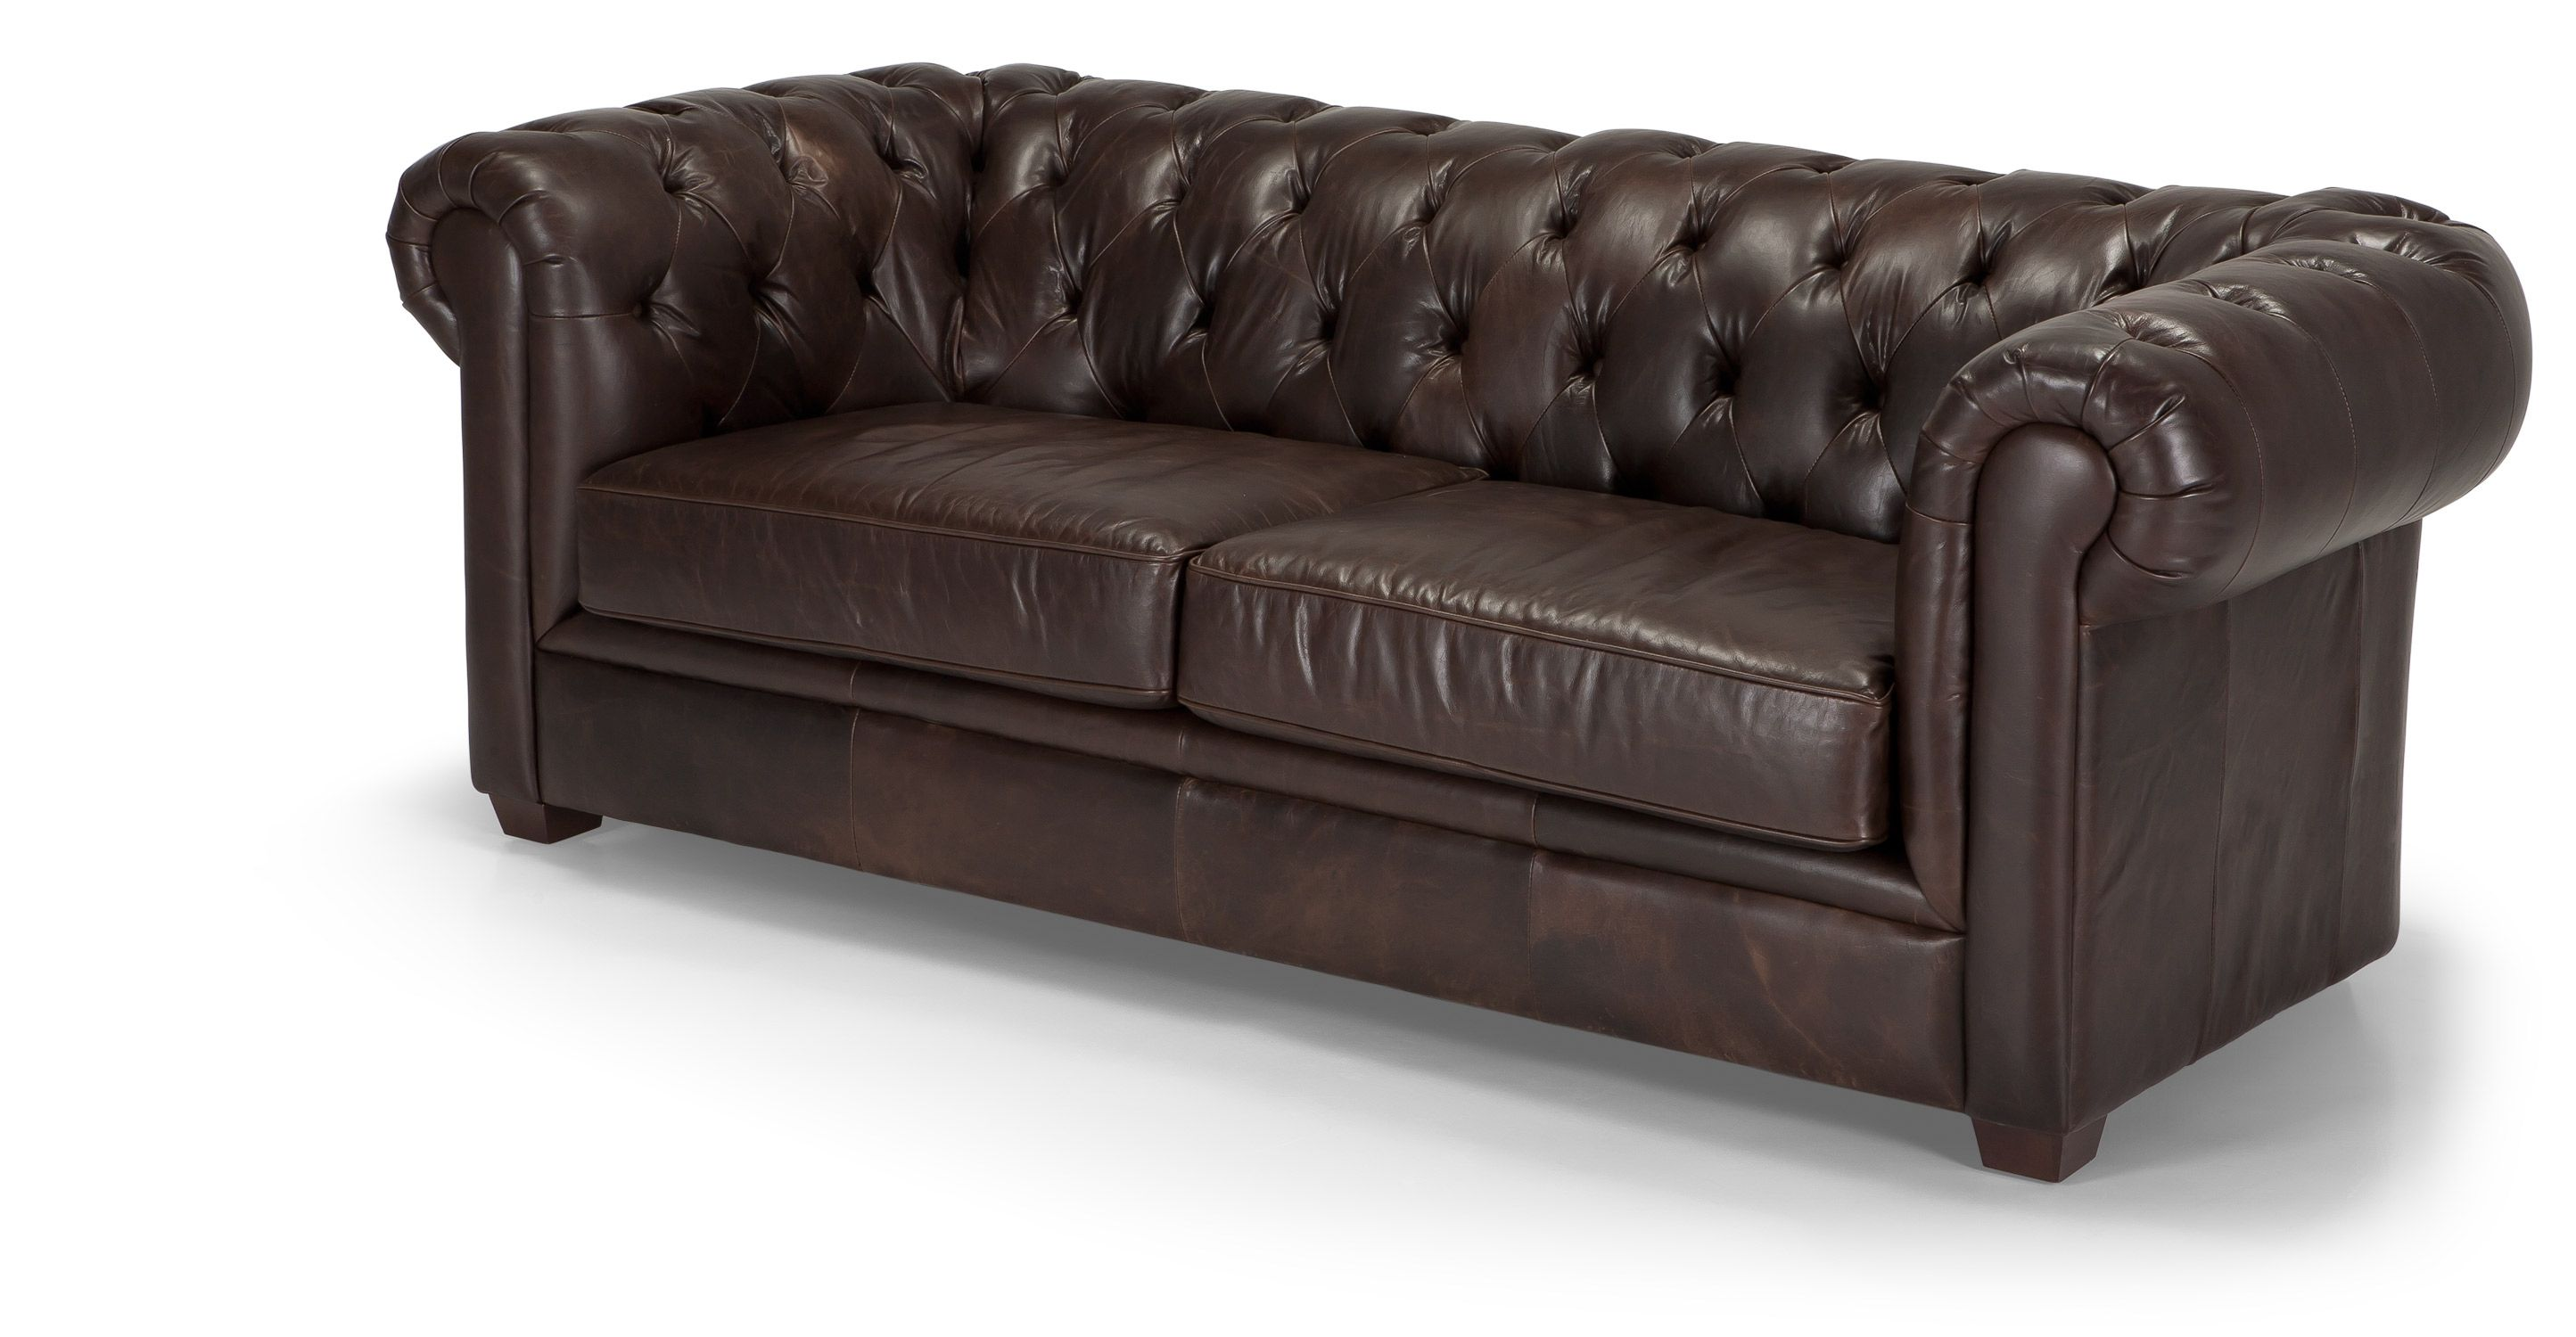 Chesterfield Sofa Living Room Ideas Mayson Chesterfield 3 Seater Sofa Antique Brown Premium